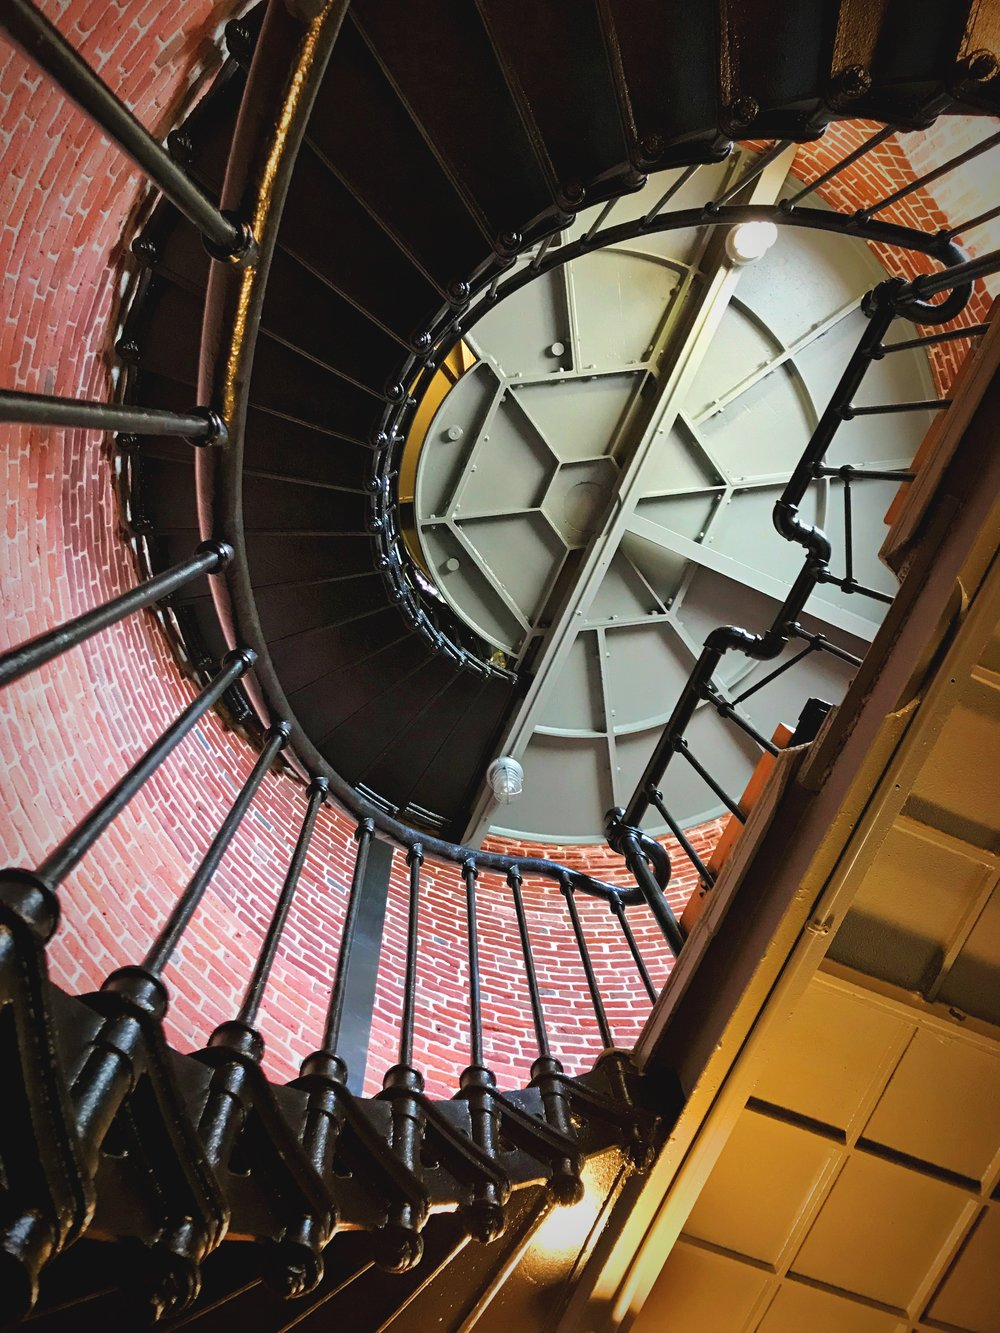 Looking up the tower at Heceta Head Lighthouse.